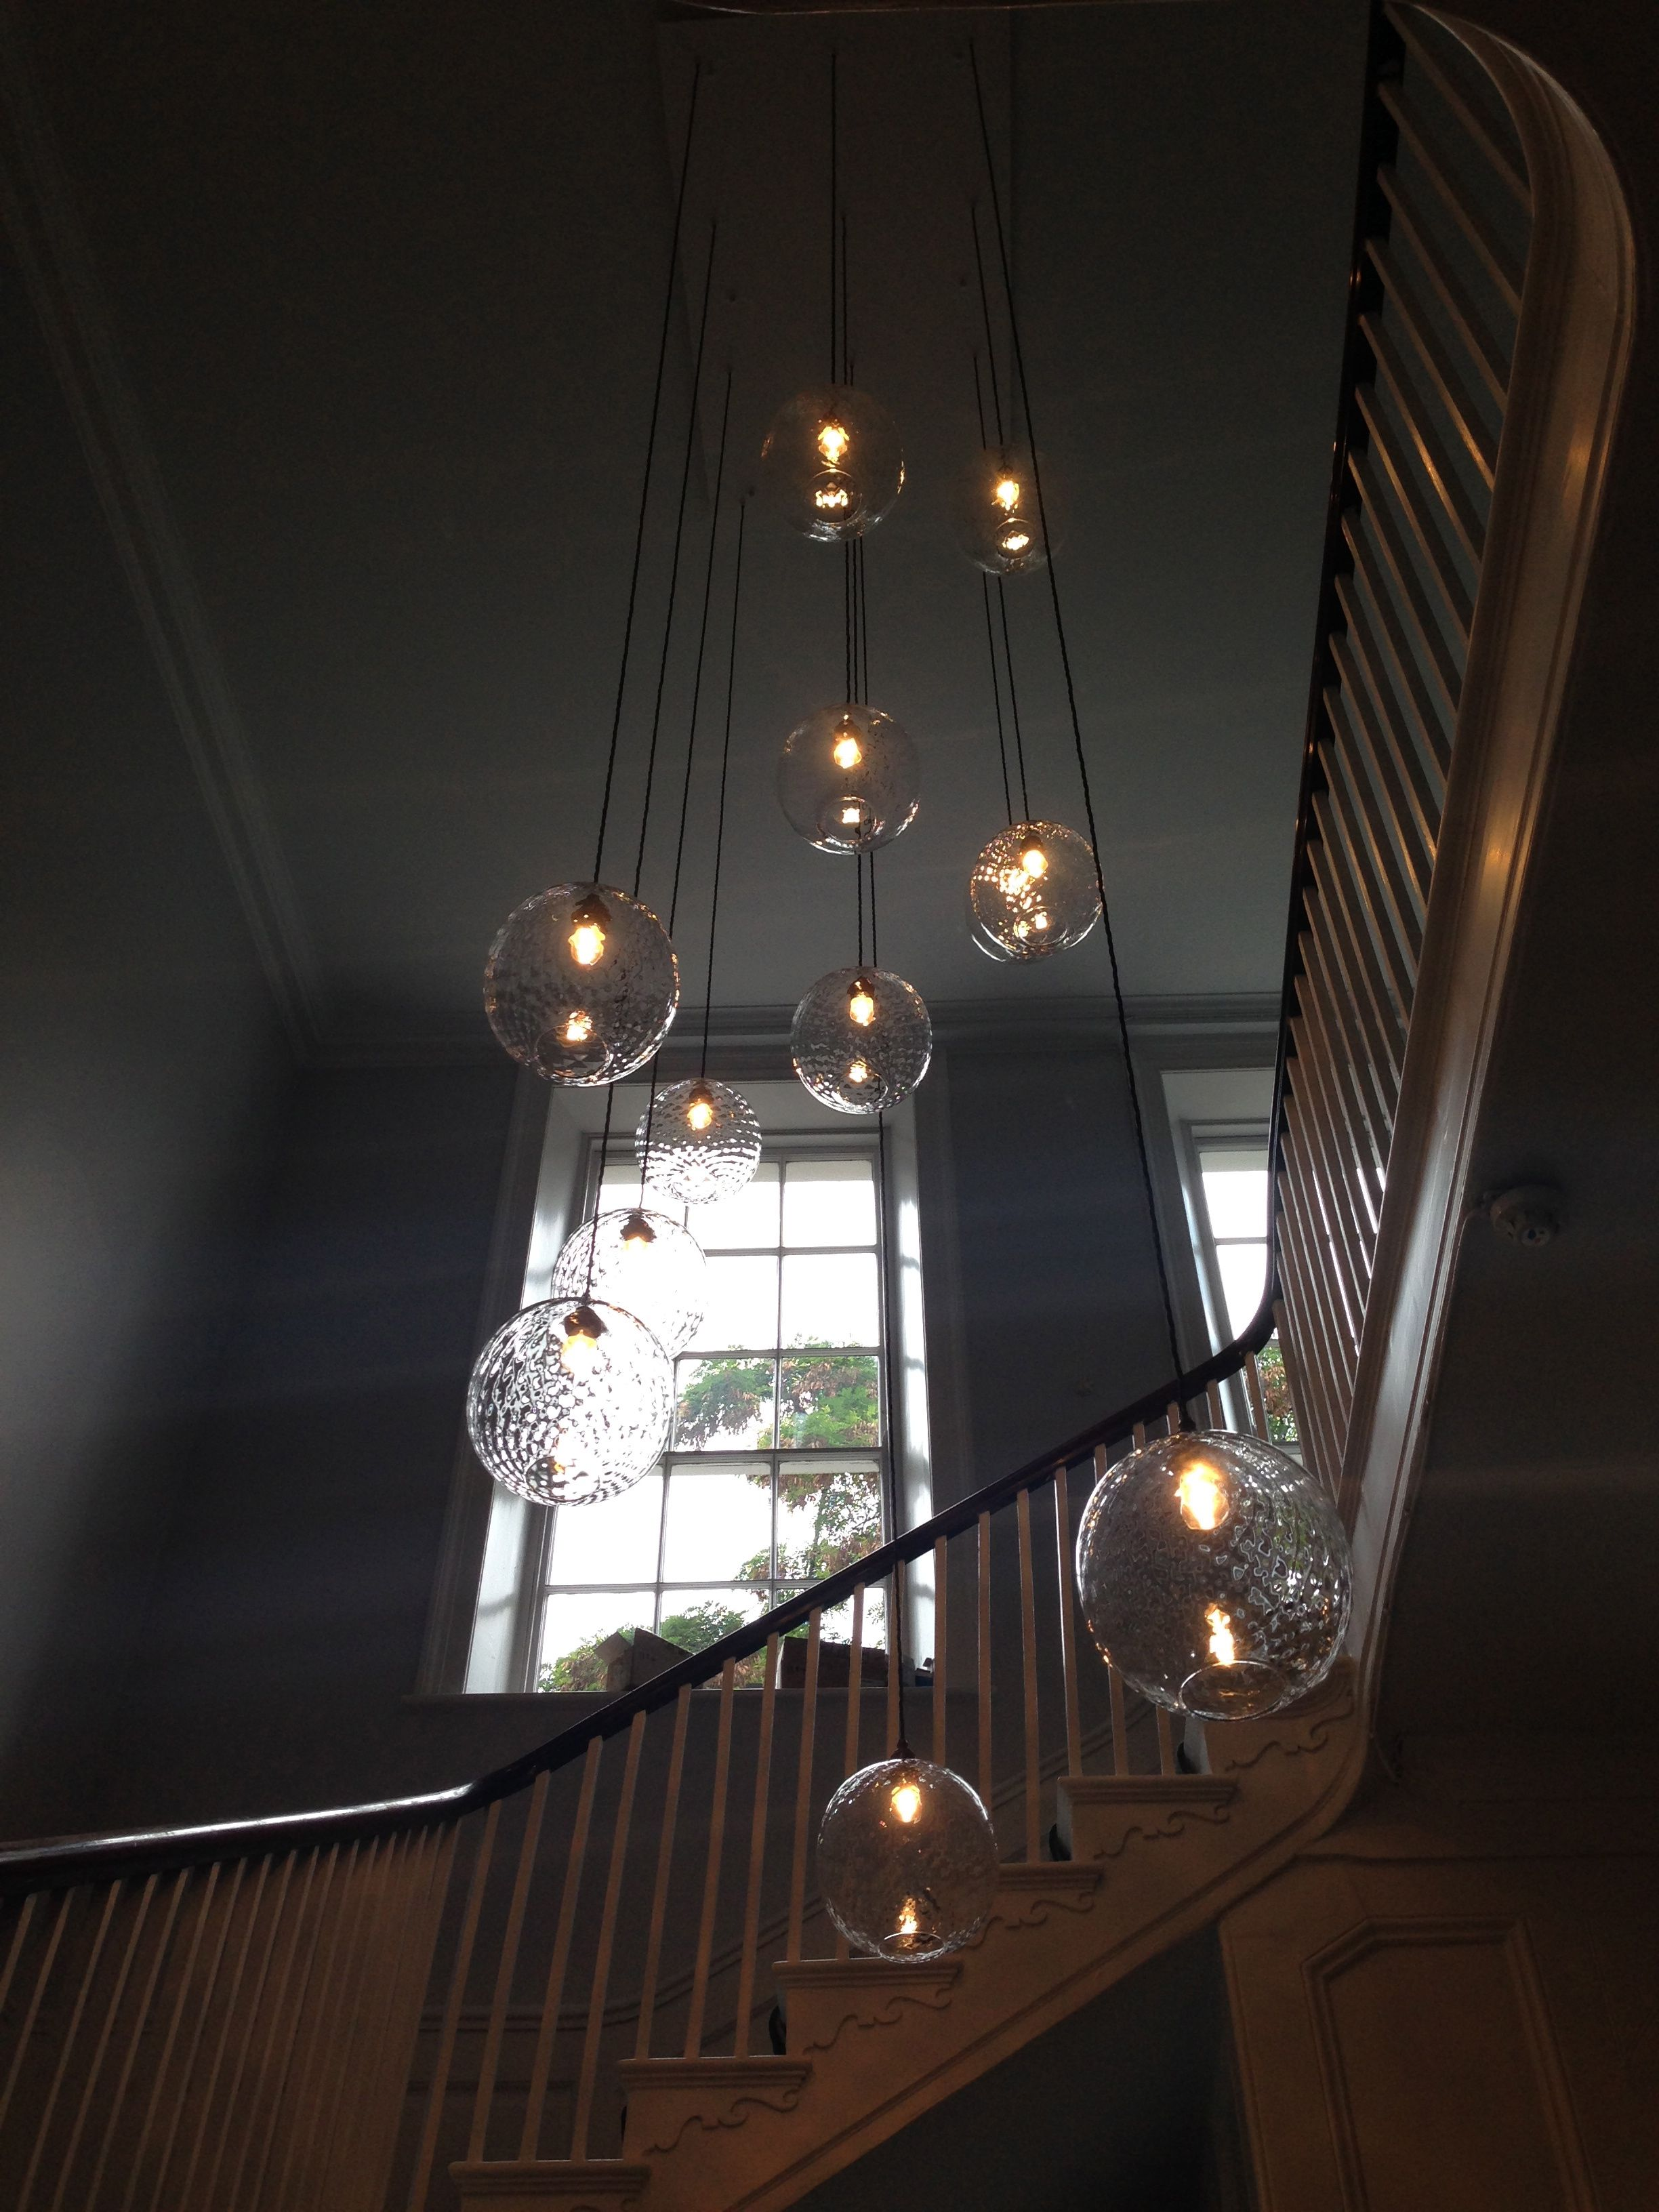 Hand Blown Glass Large Clear Diamond Pick N Mix Pendant Lights By Lighting Fixture Using Multiple On Wiring Ceiling Light Rothschild Bickers In A Stairwell Drop Plate